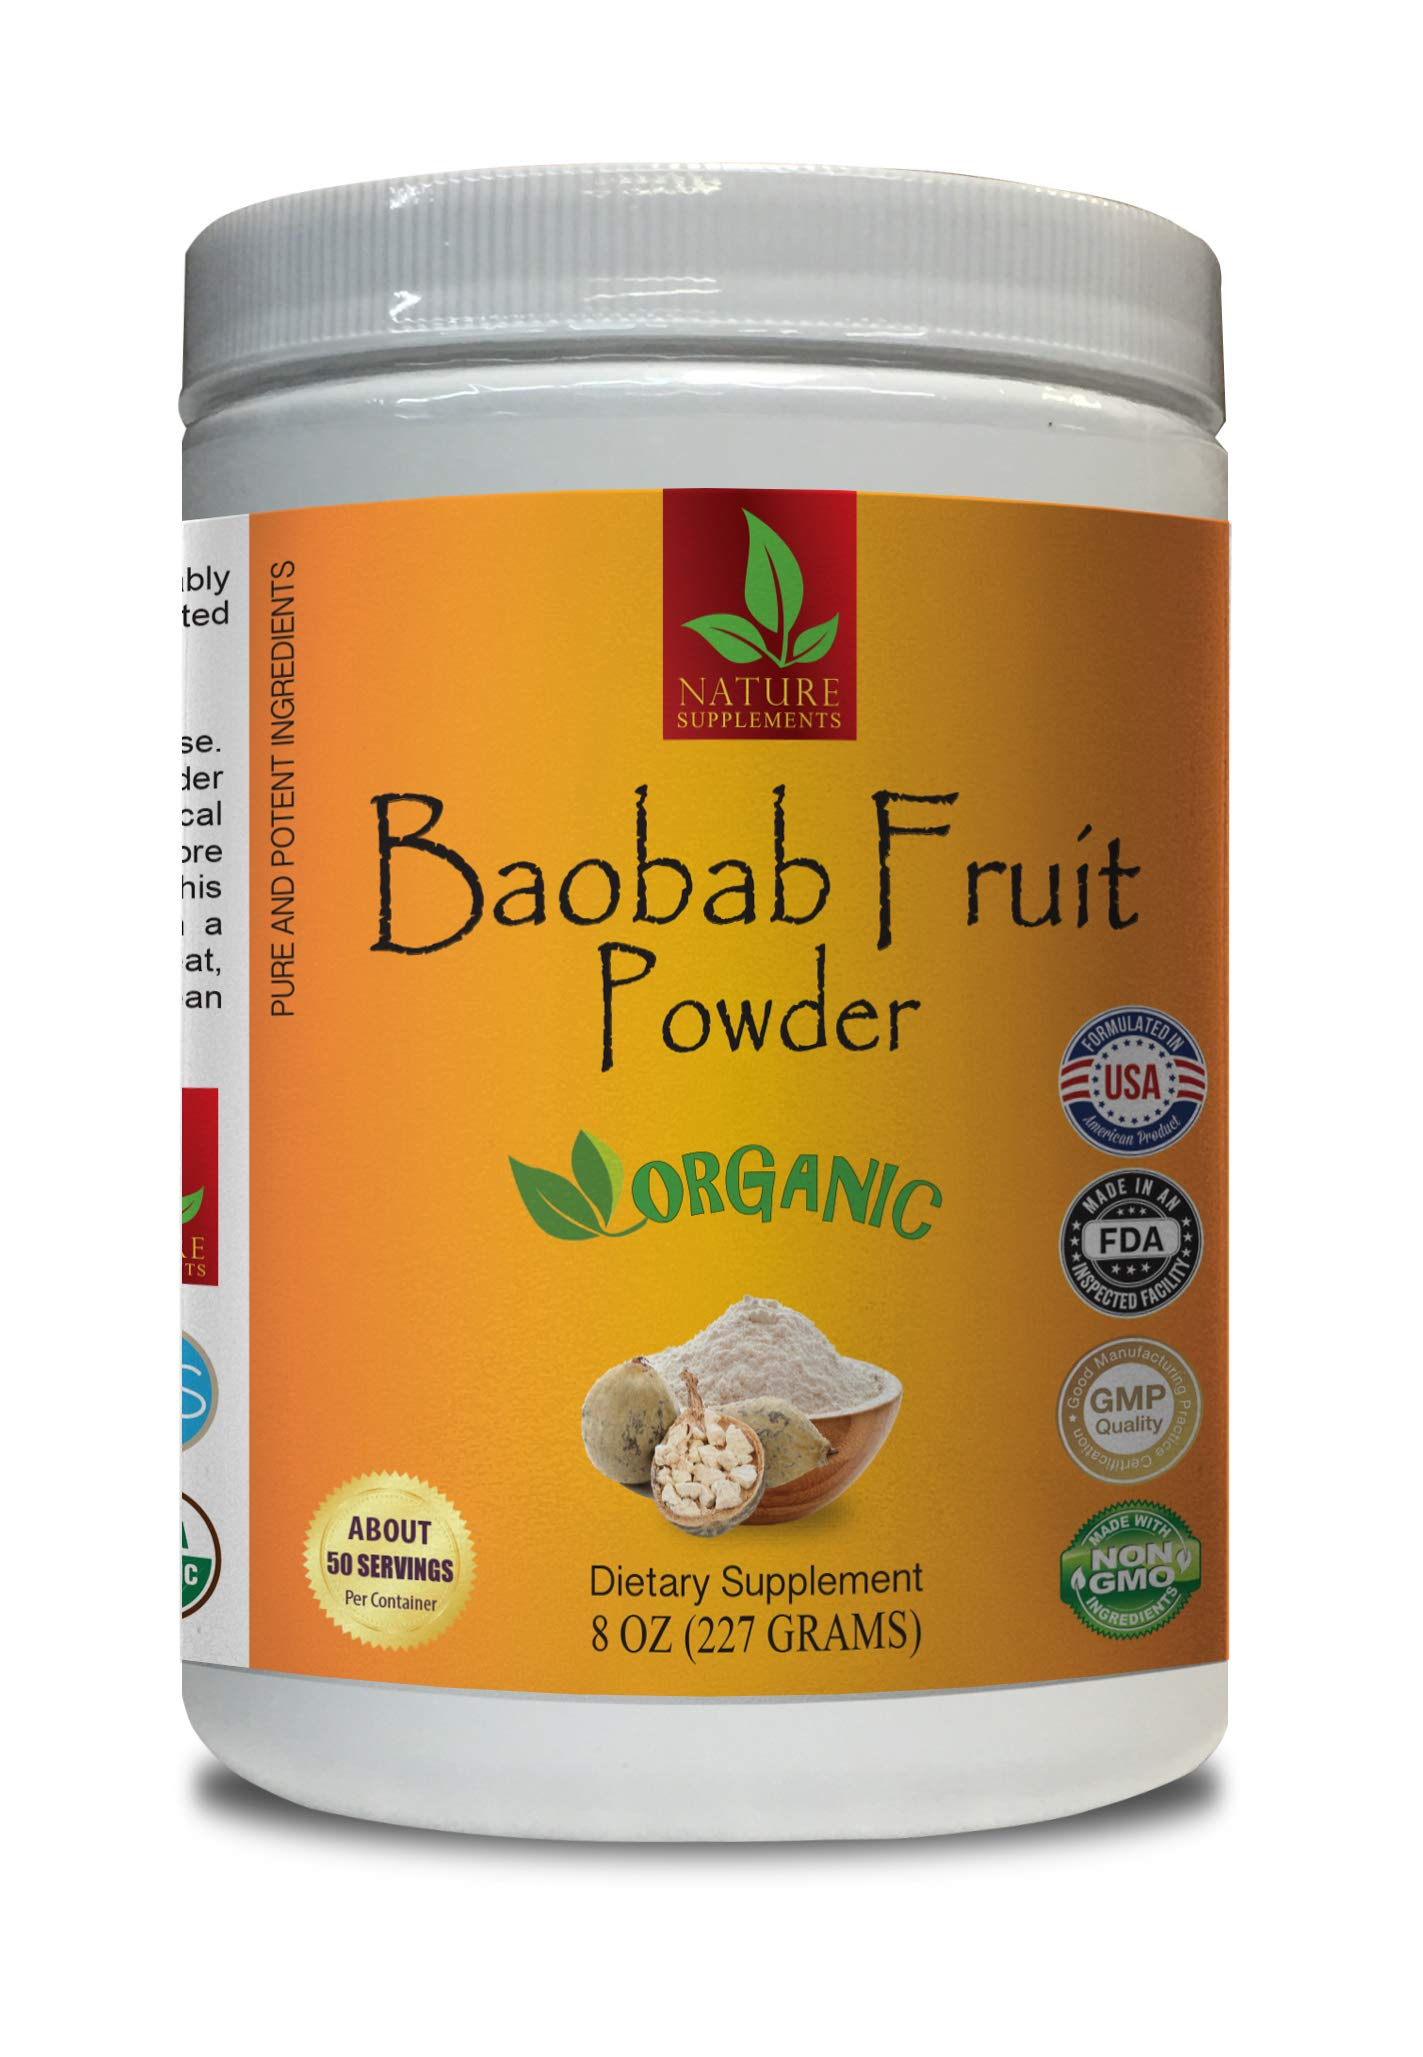 antioxidant Immune Booster - Baobab Fruit Organic Powder - Pure and Potent Ingredients - Baobab Powder - 1 Can 8 OZ (50 Servings)